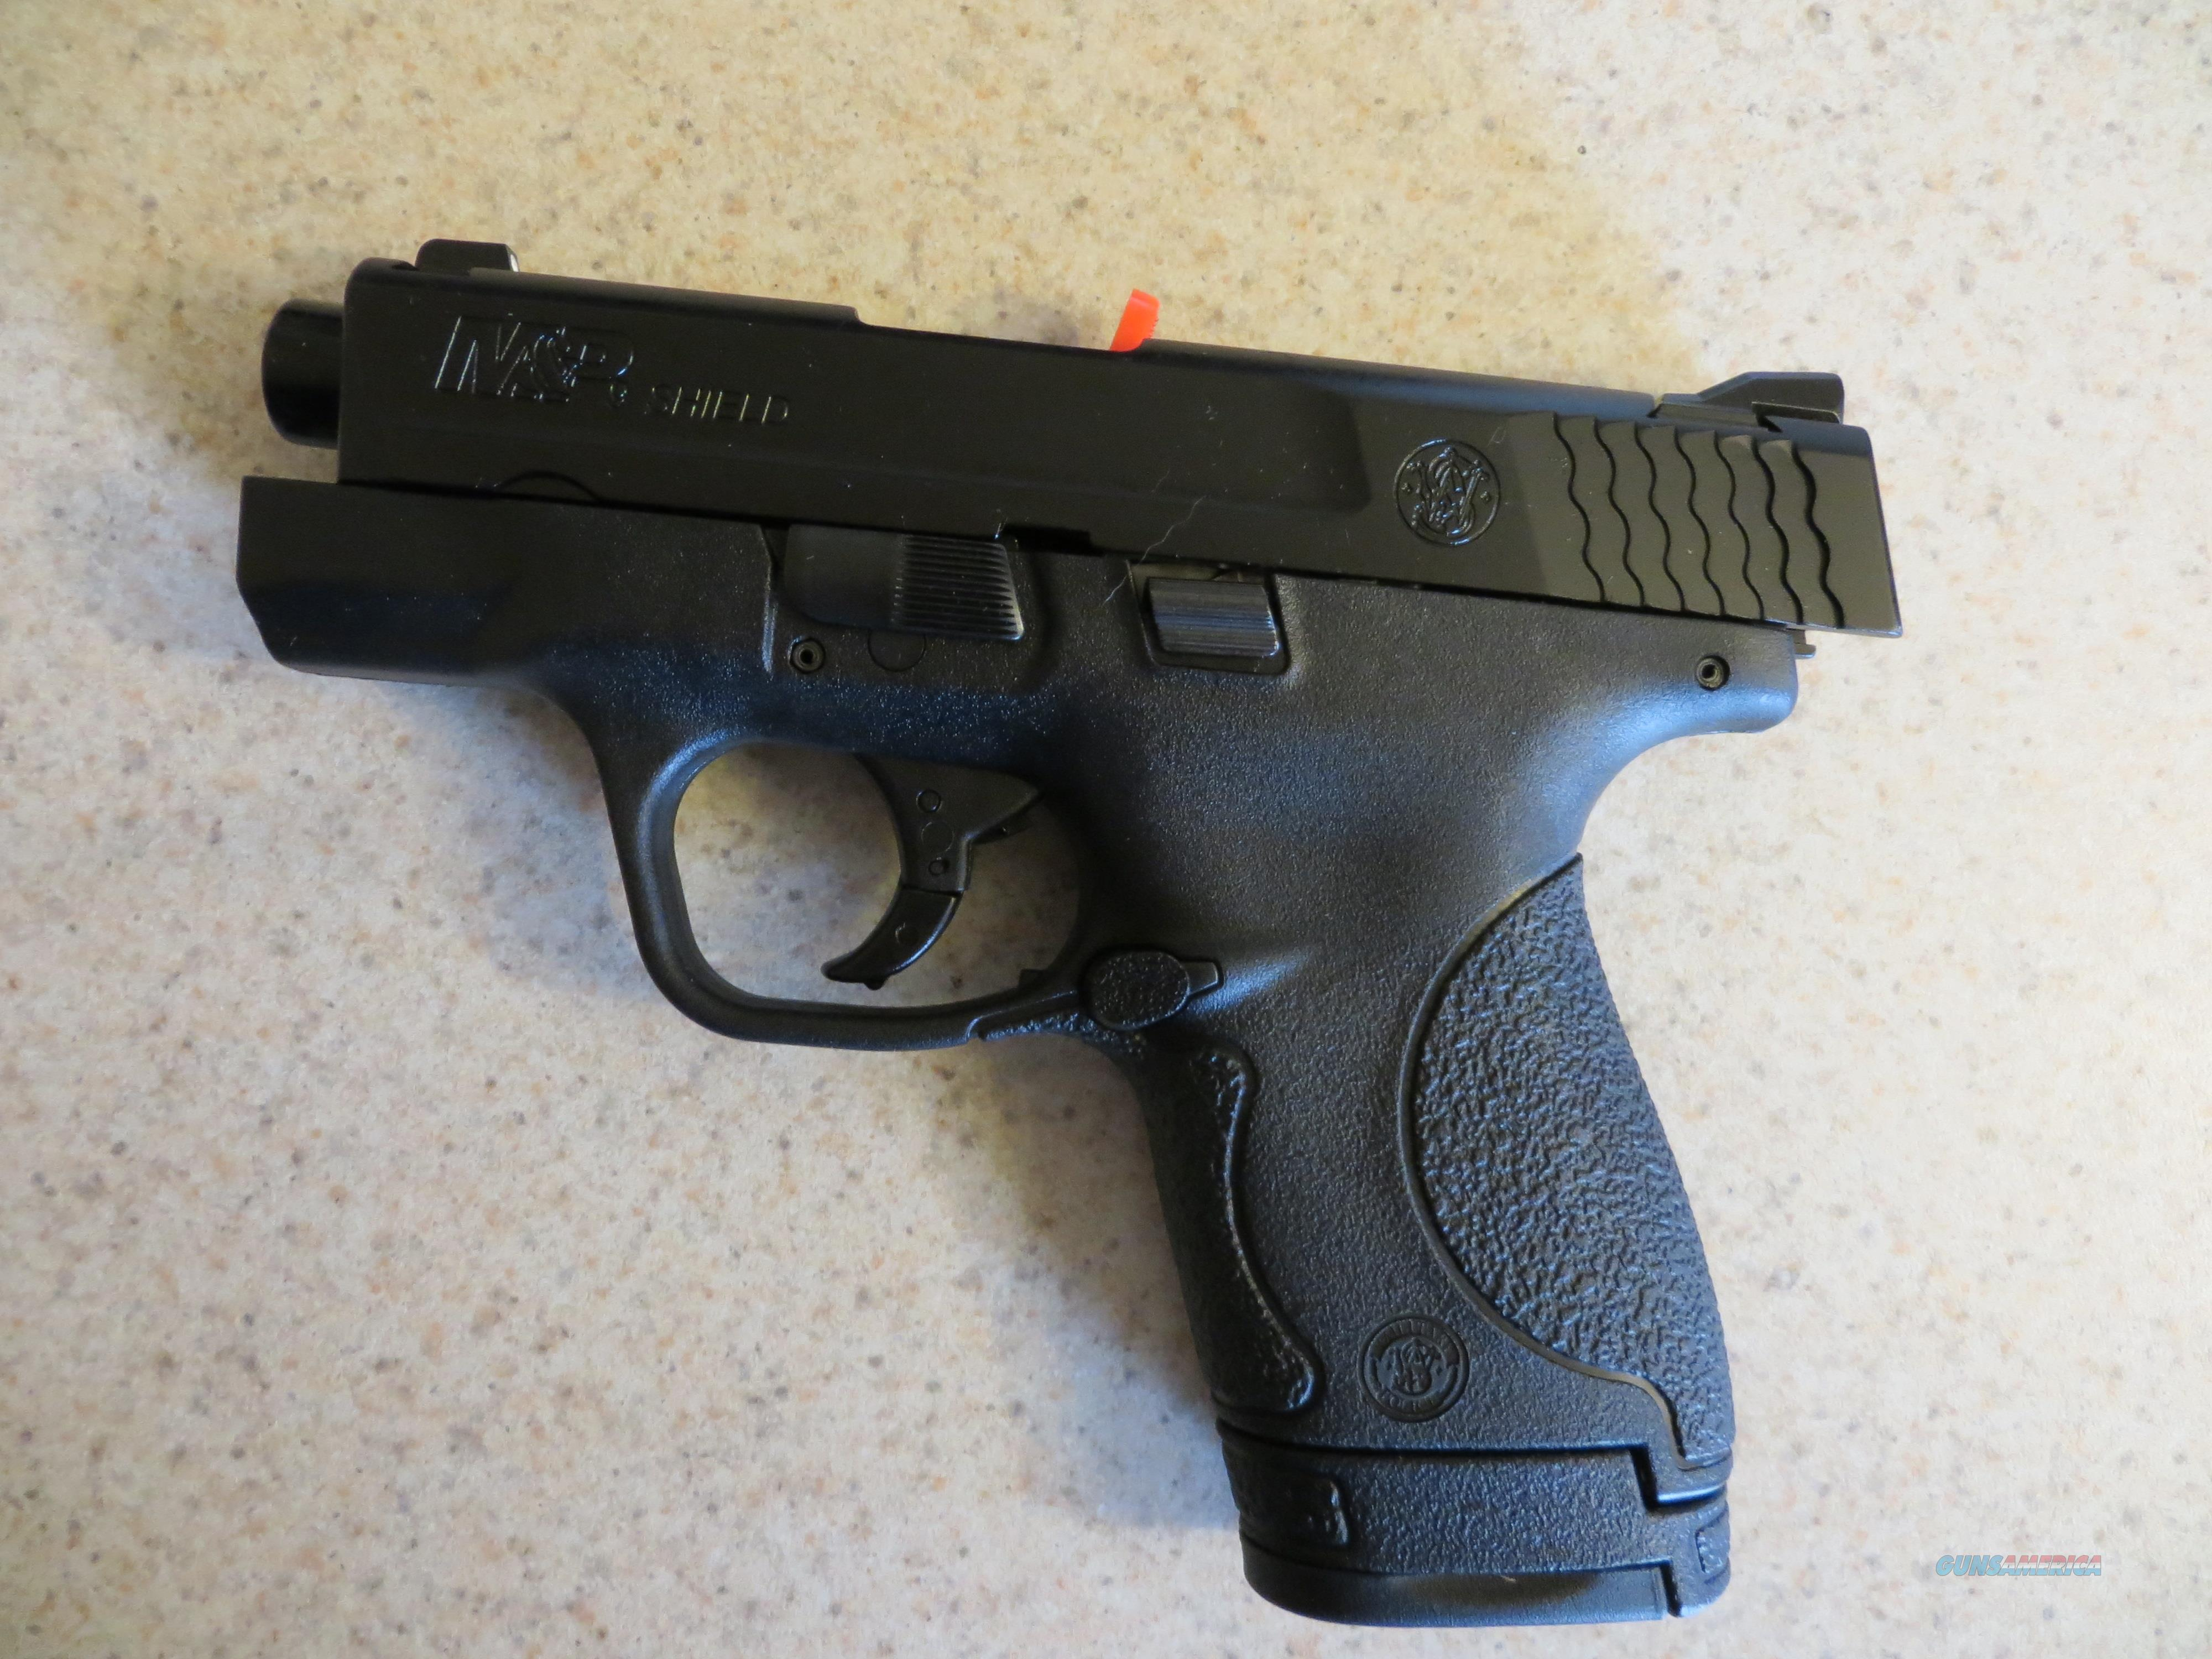 Smith & Wesson M&P 9 Shield 9mm #10035 NIB  Guns > Pistols > Smith & Wesson Pistols - Autos > Shield